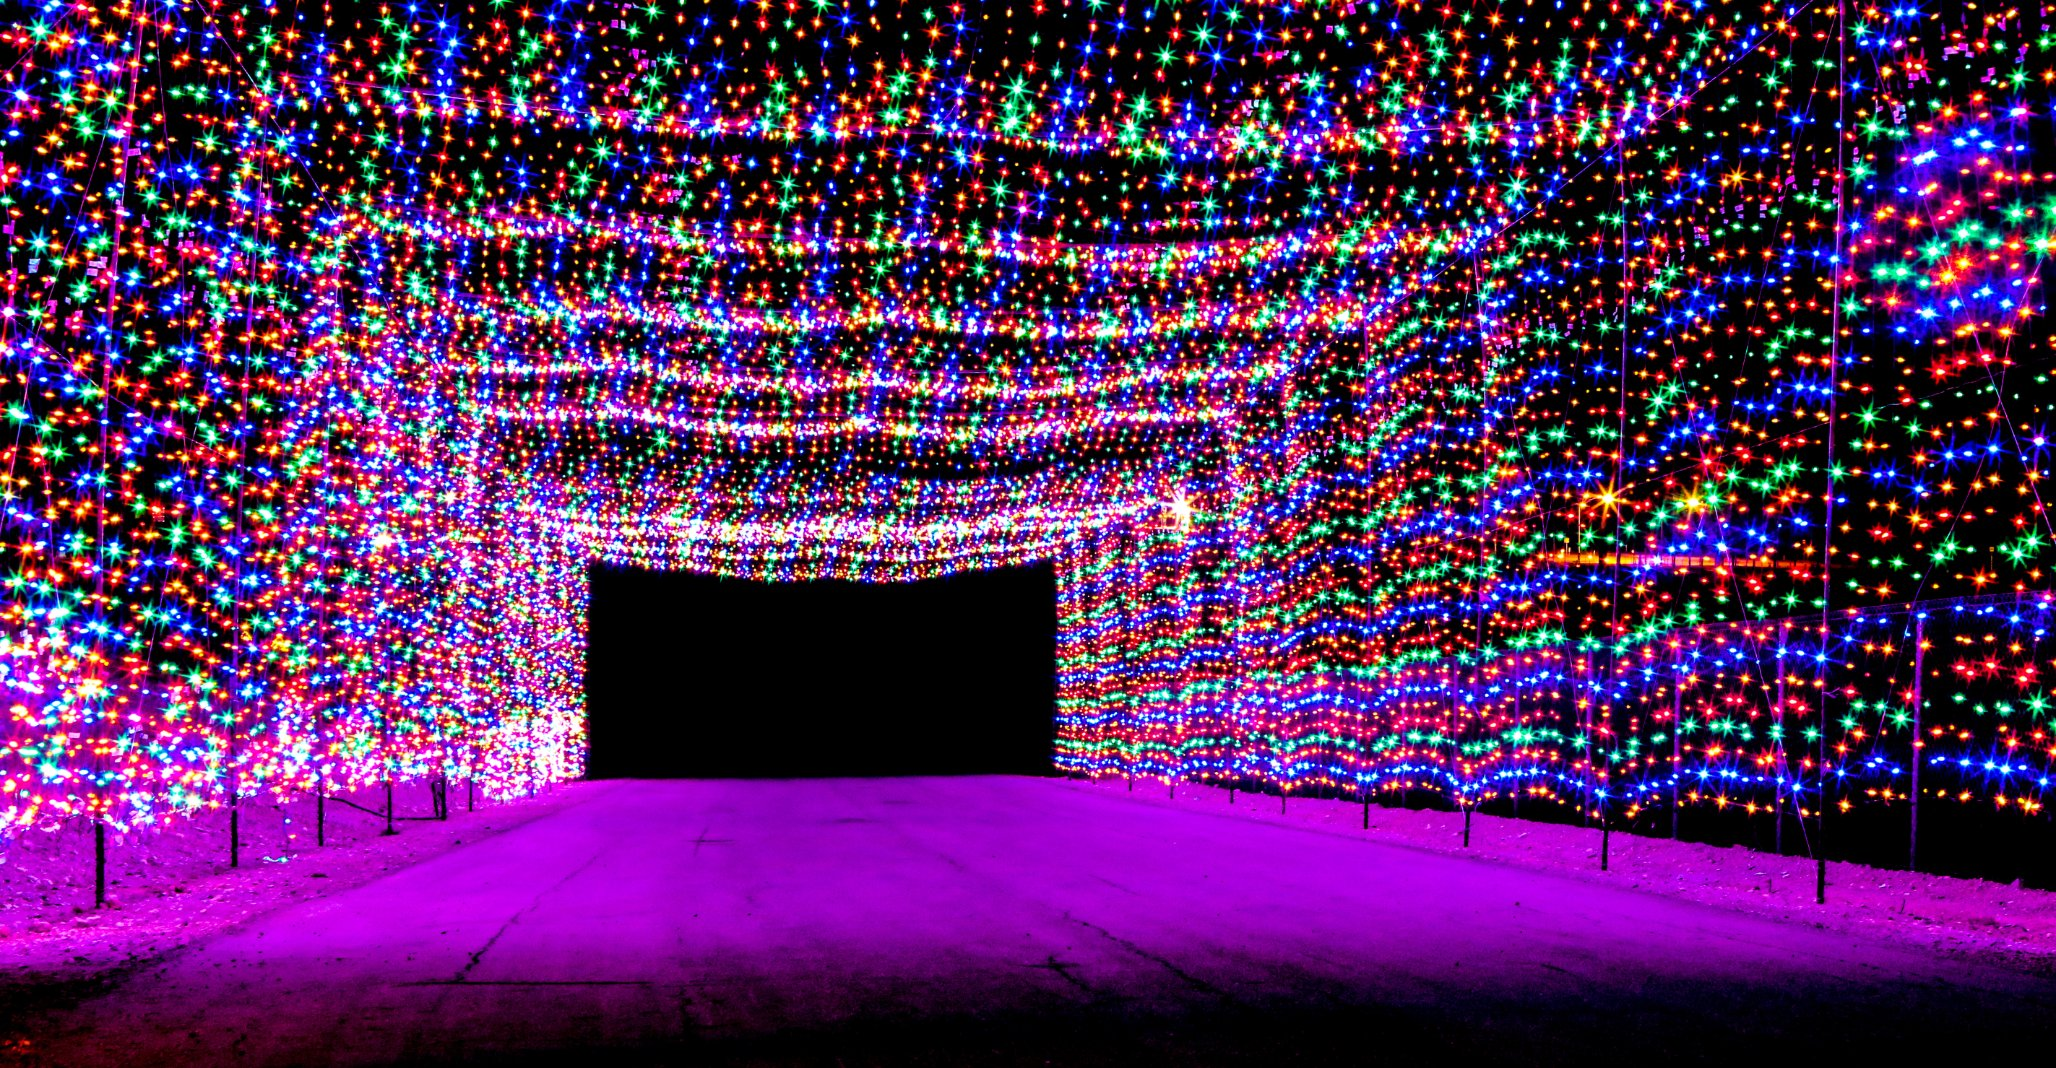 Best places to see Christmas lights from D.C. to Las Vegas | CNN ...